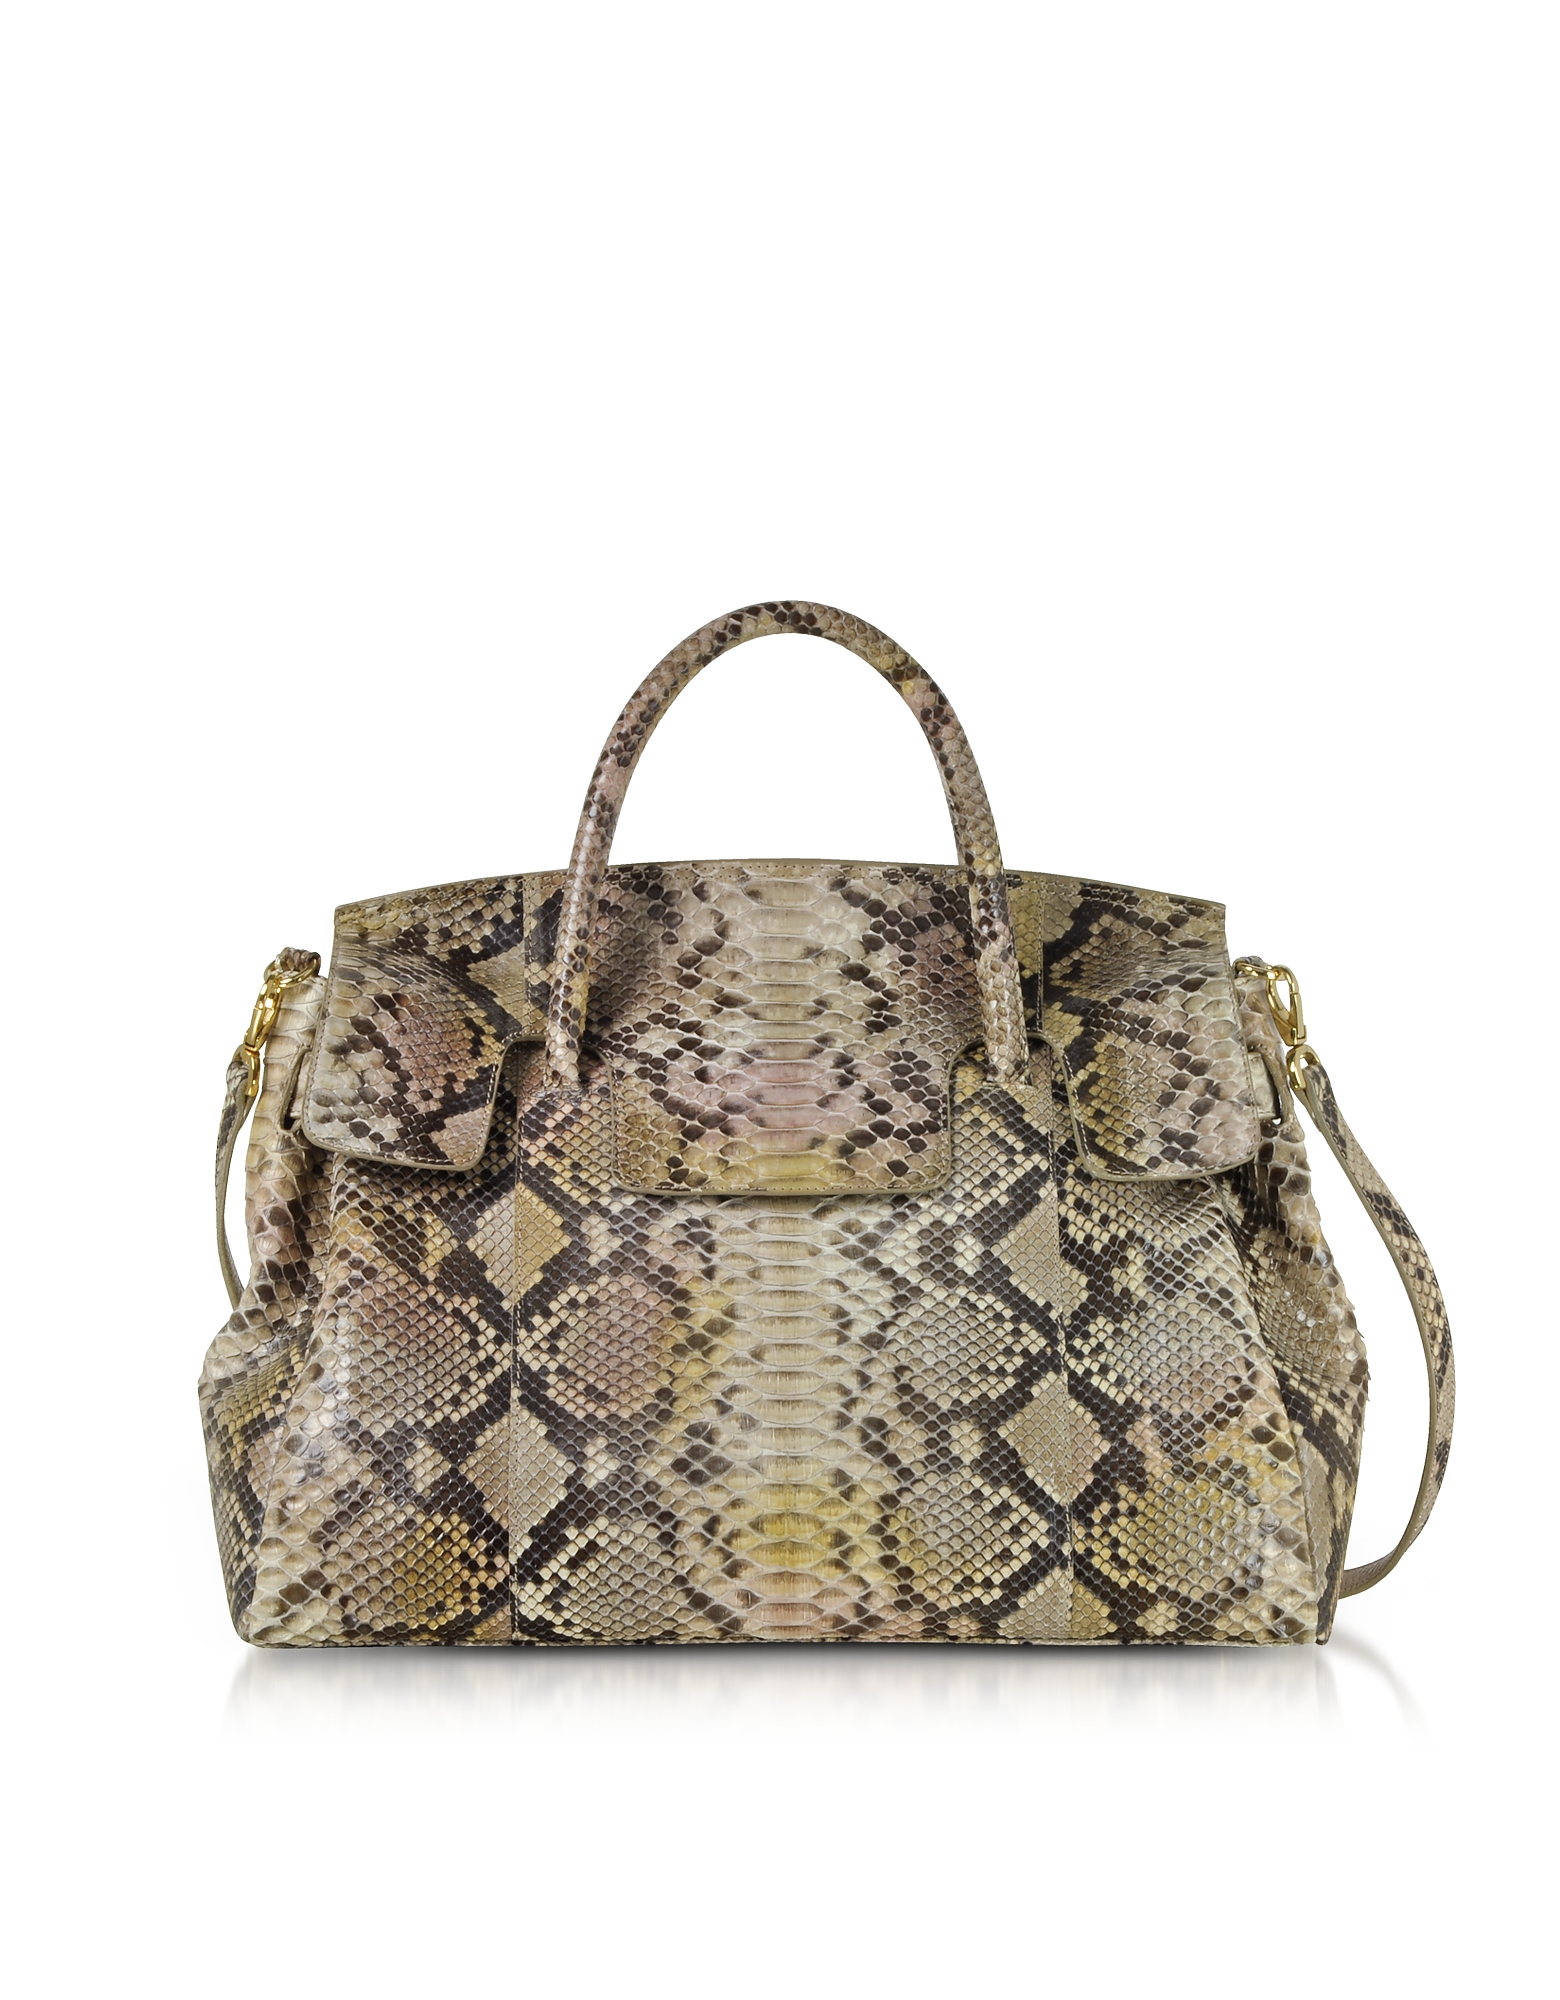 Ghibli Handbags, Python Leather Large Satchel Bag